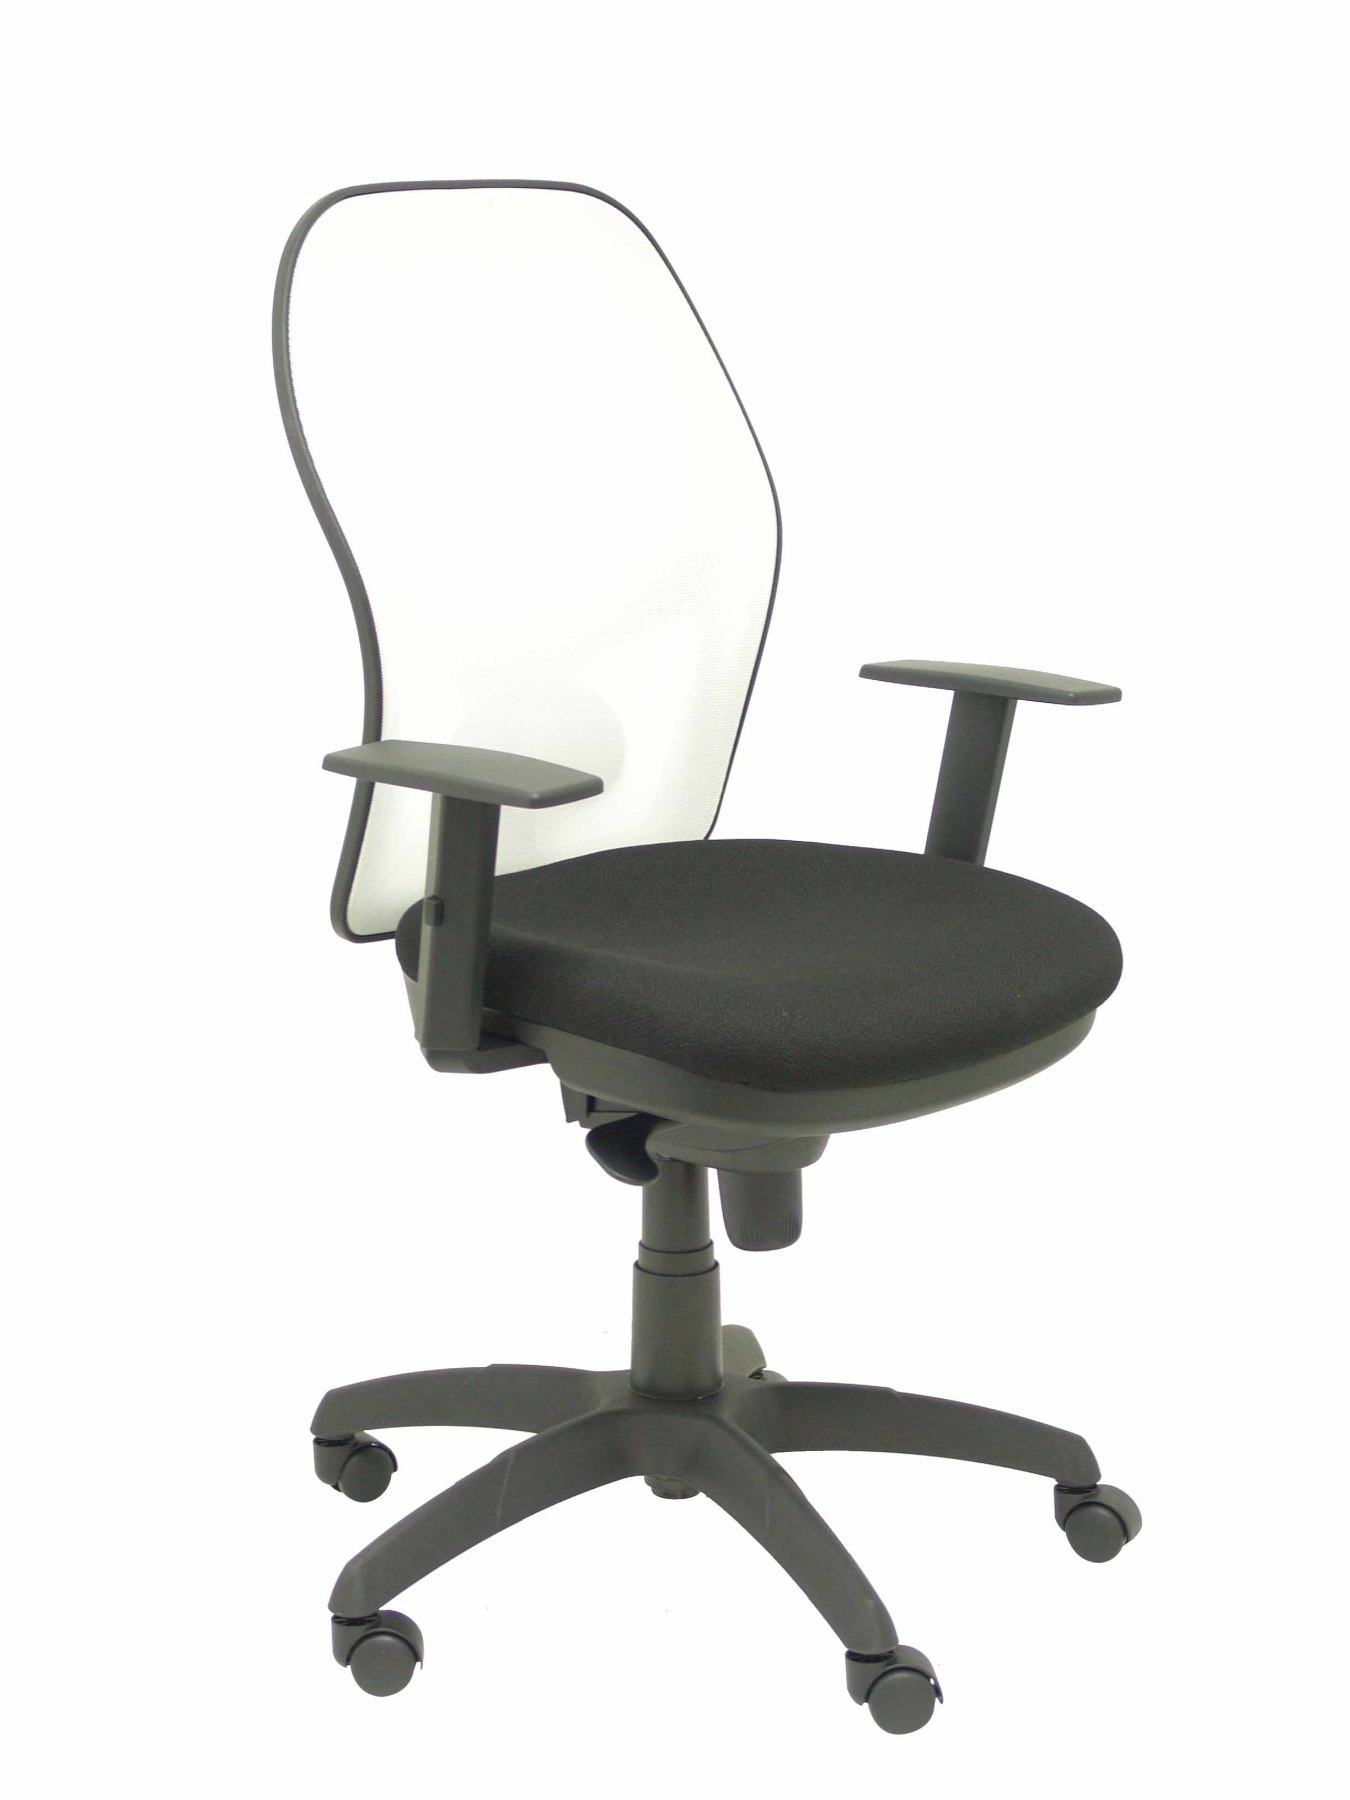 Ergonomic Office Chair With Mechanism Synchro, Arms Adjustable And Height-adjustable Mesh Back Transpirab